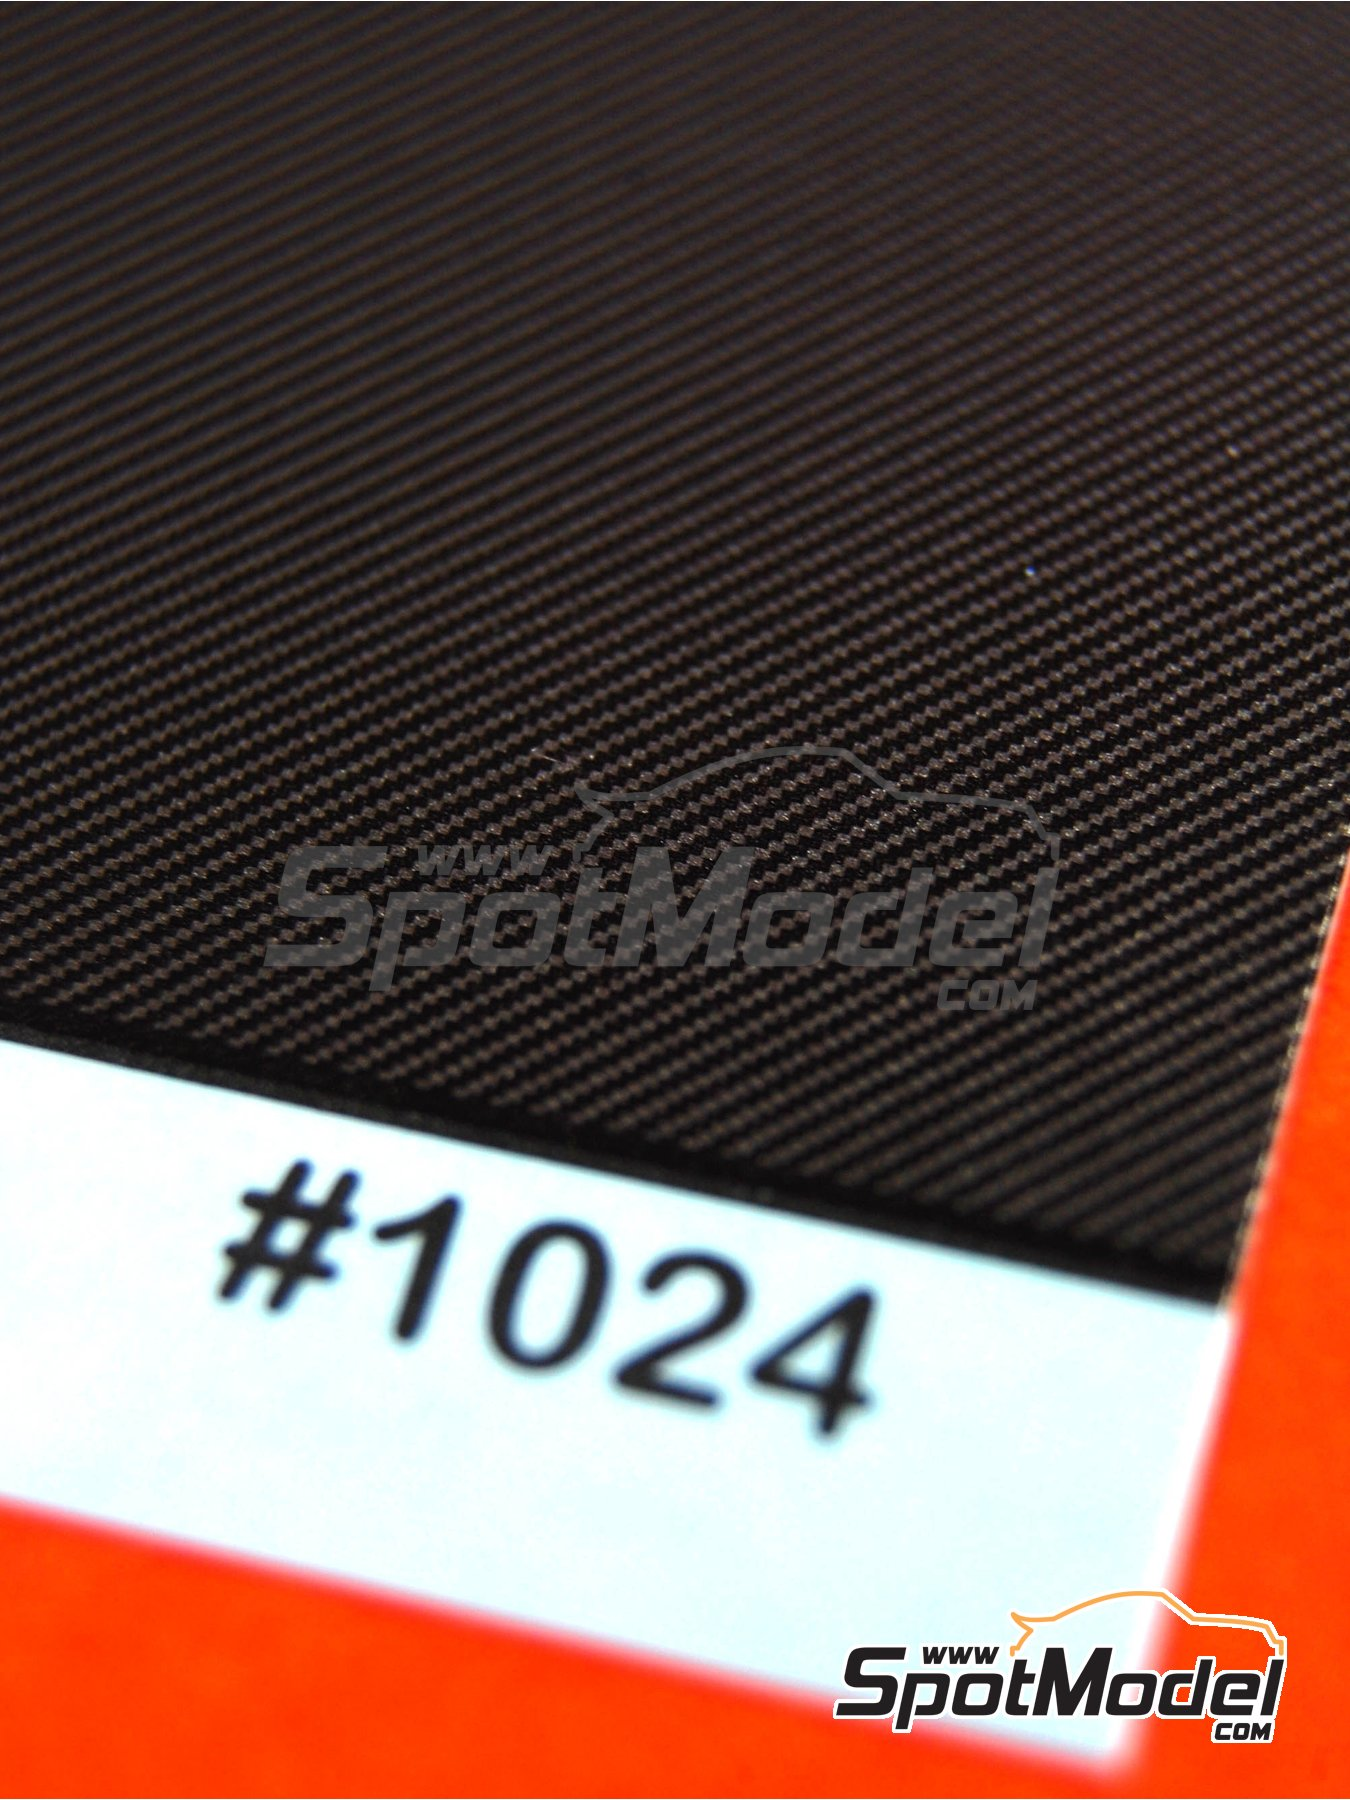 Medium size twill weave carbon fiber patten in black | Decals in 1/24 scale manufactured by Scale Motorsport (ref. SM1024, also 1024) image